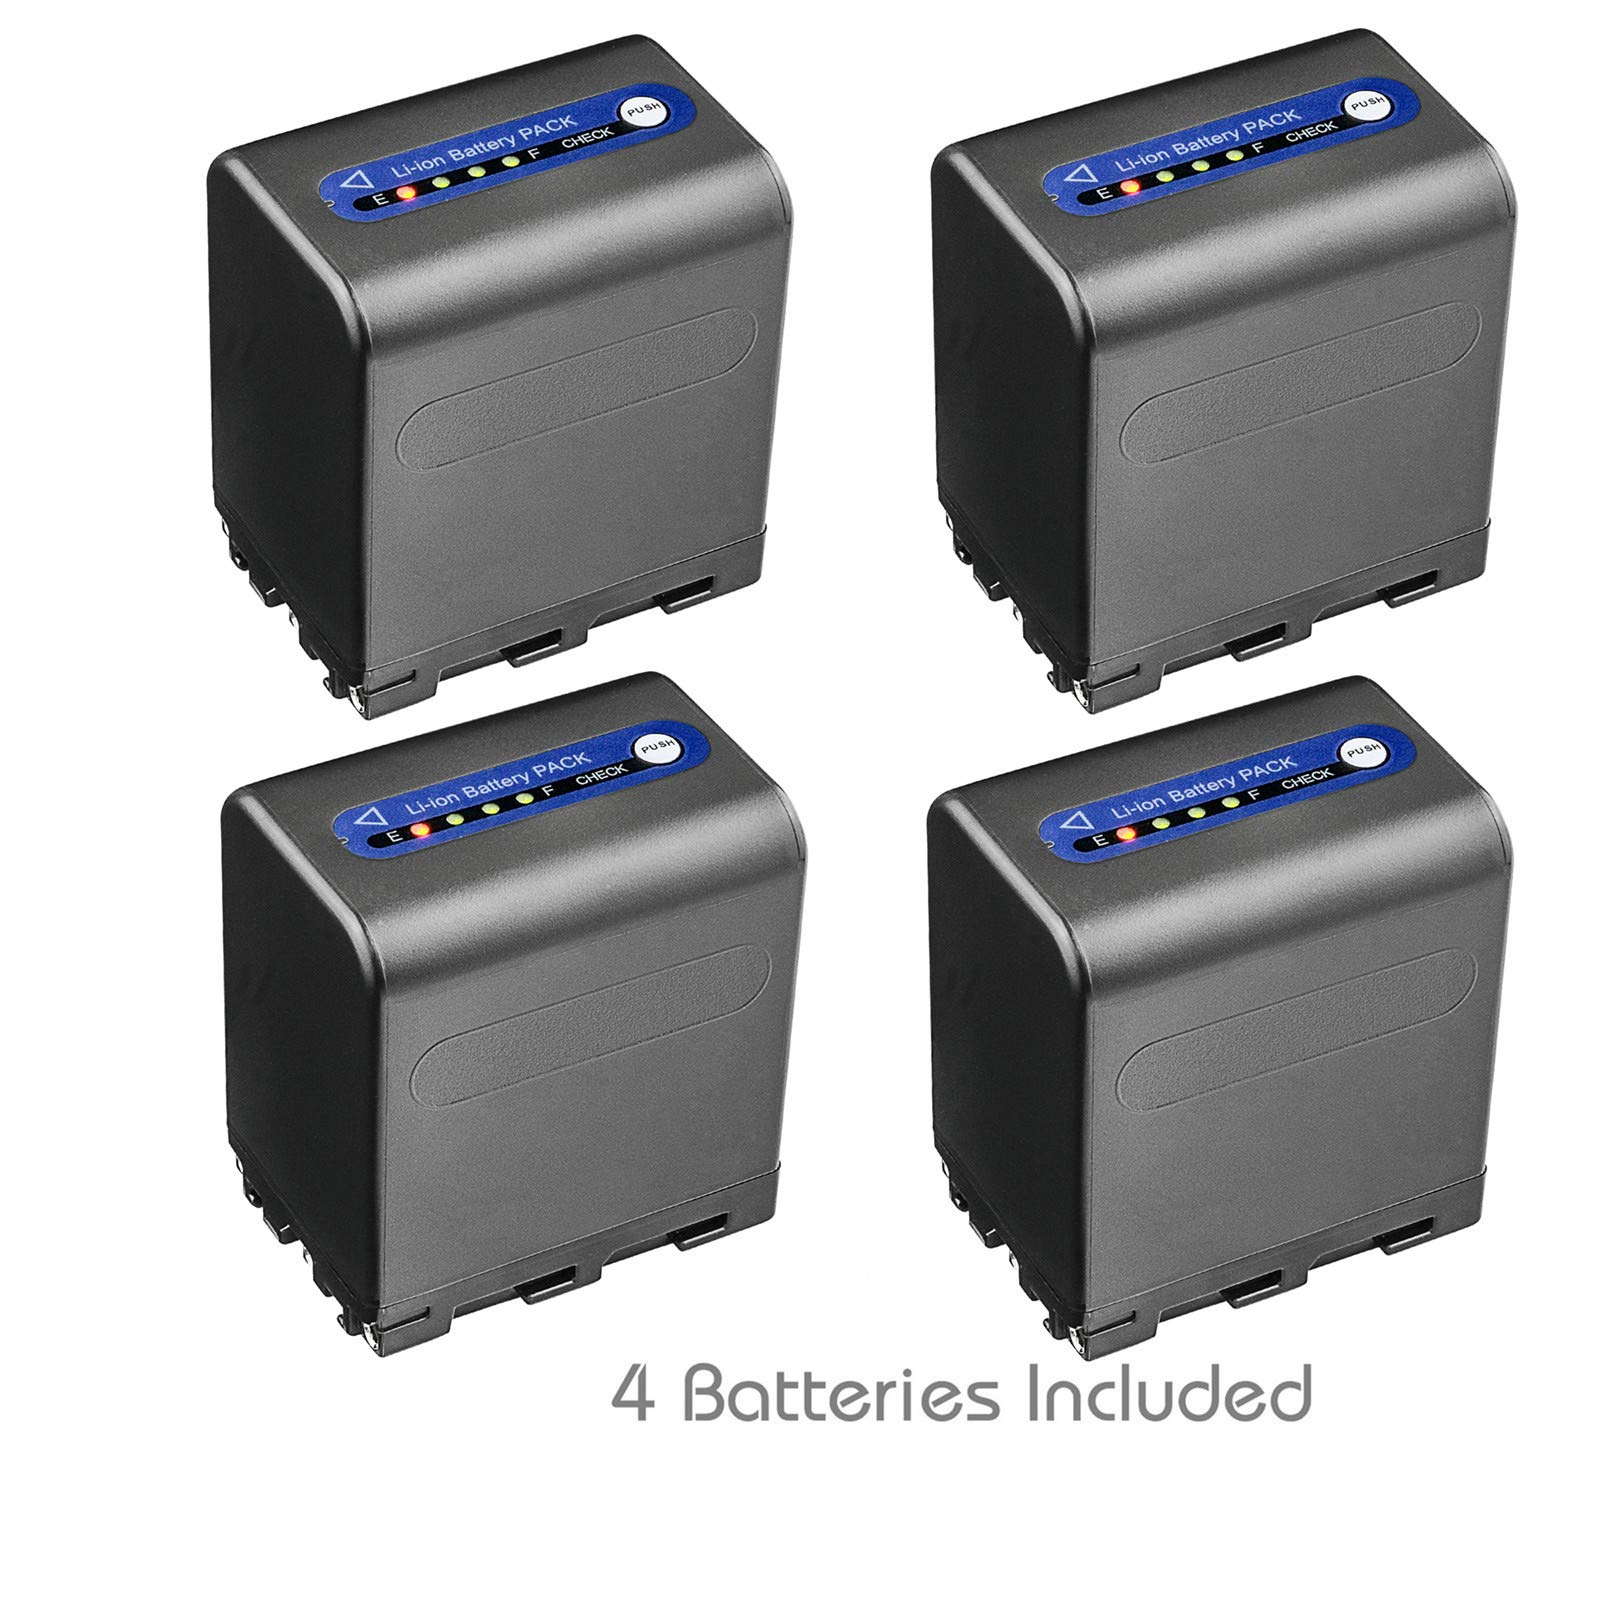 Kastar Battery 4-Pack for Sony NP-QM91D NP-QM91 and DCR-HC14 DCR-HC15 DCR-HC88 DCR-PC100 DCR-PC101 DCR-PC103 DCR-PC104 DCR-PC105 DCR-PC110 DCR-PC115 DCR-PC120 DCR-PC330 DCR-PC6 DCR-PC8 DCR-PC9 by Kastar